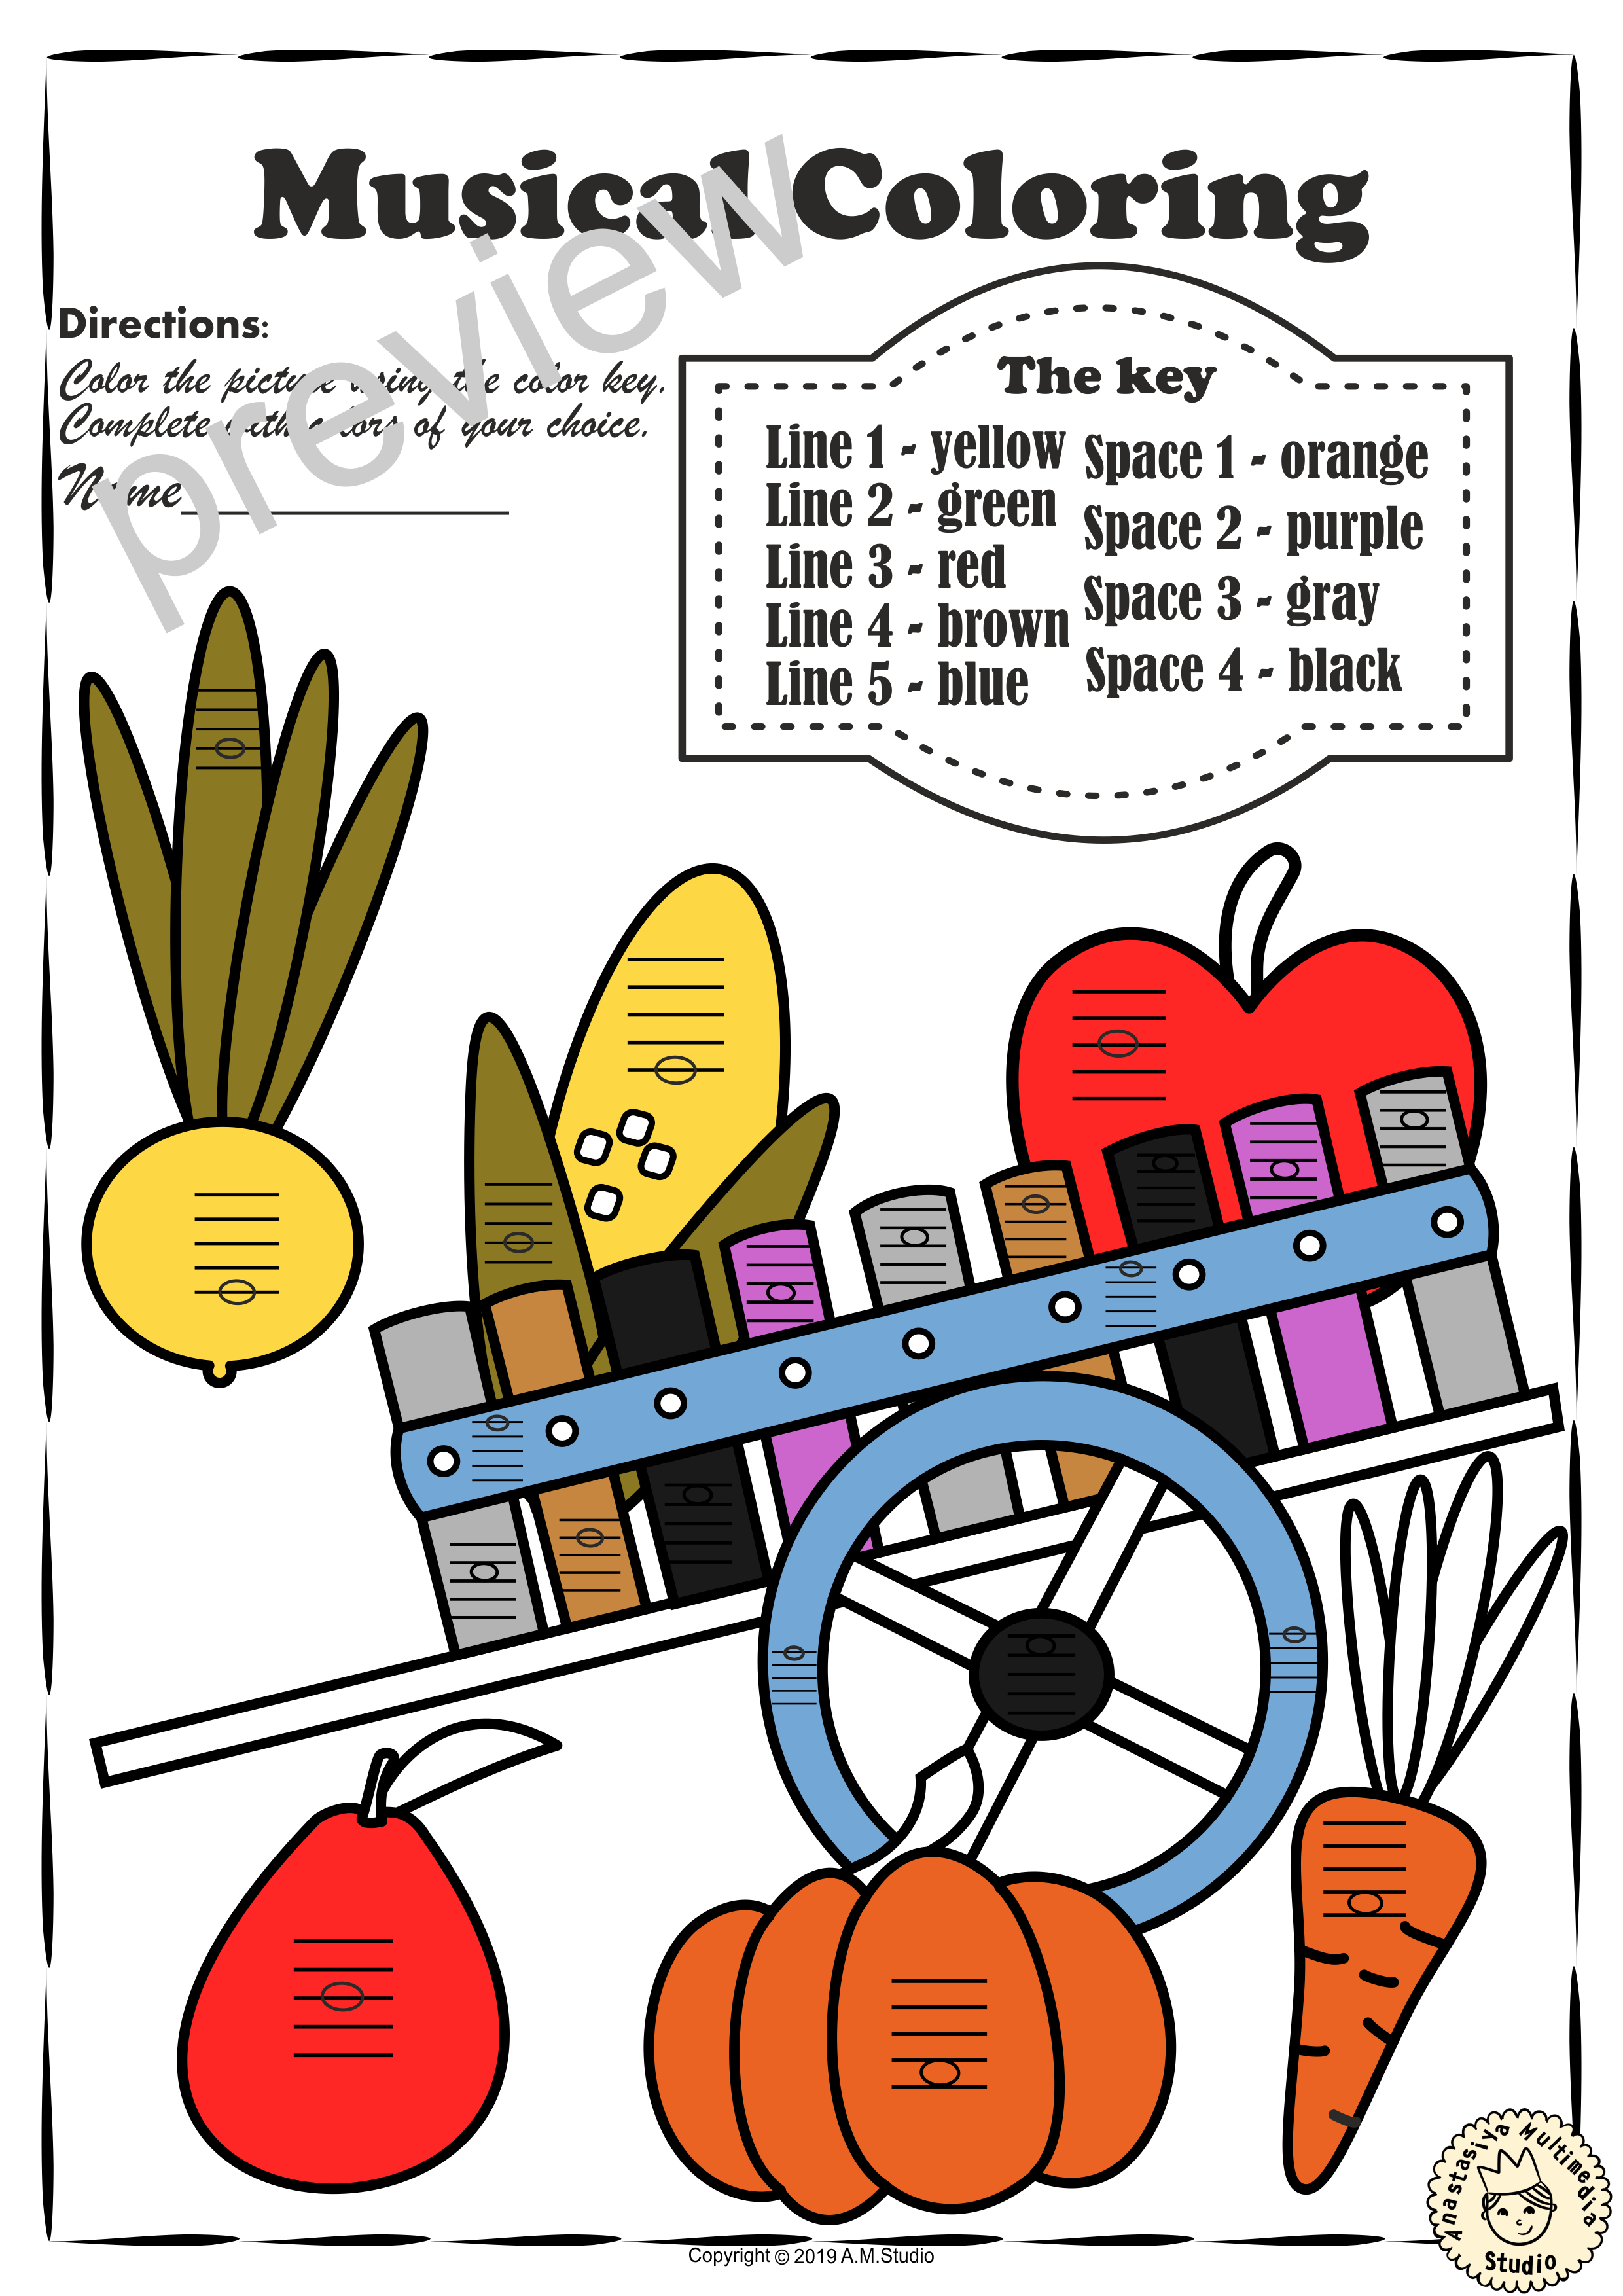 Musical Coloring Pages For Fall Lines And Spaces With